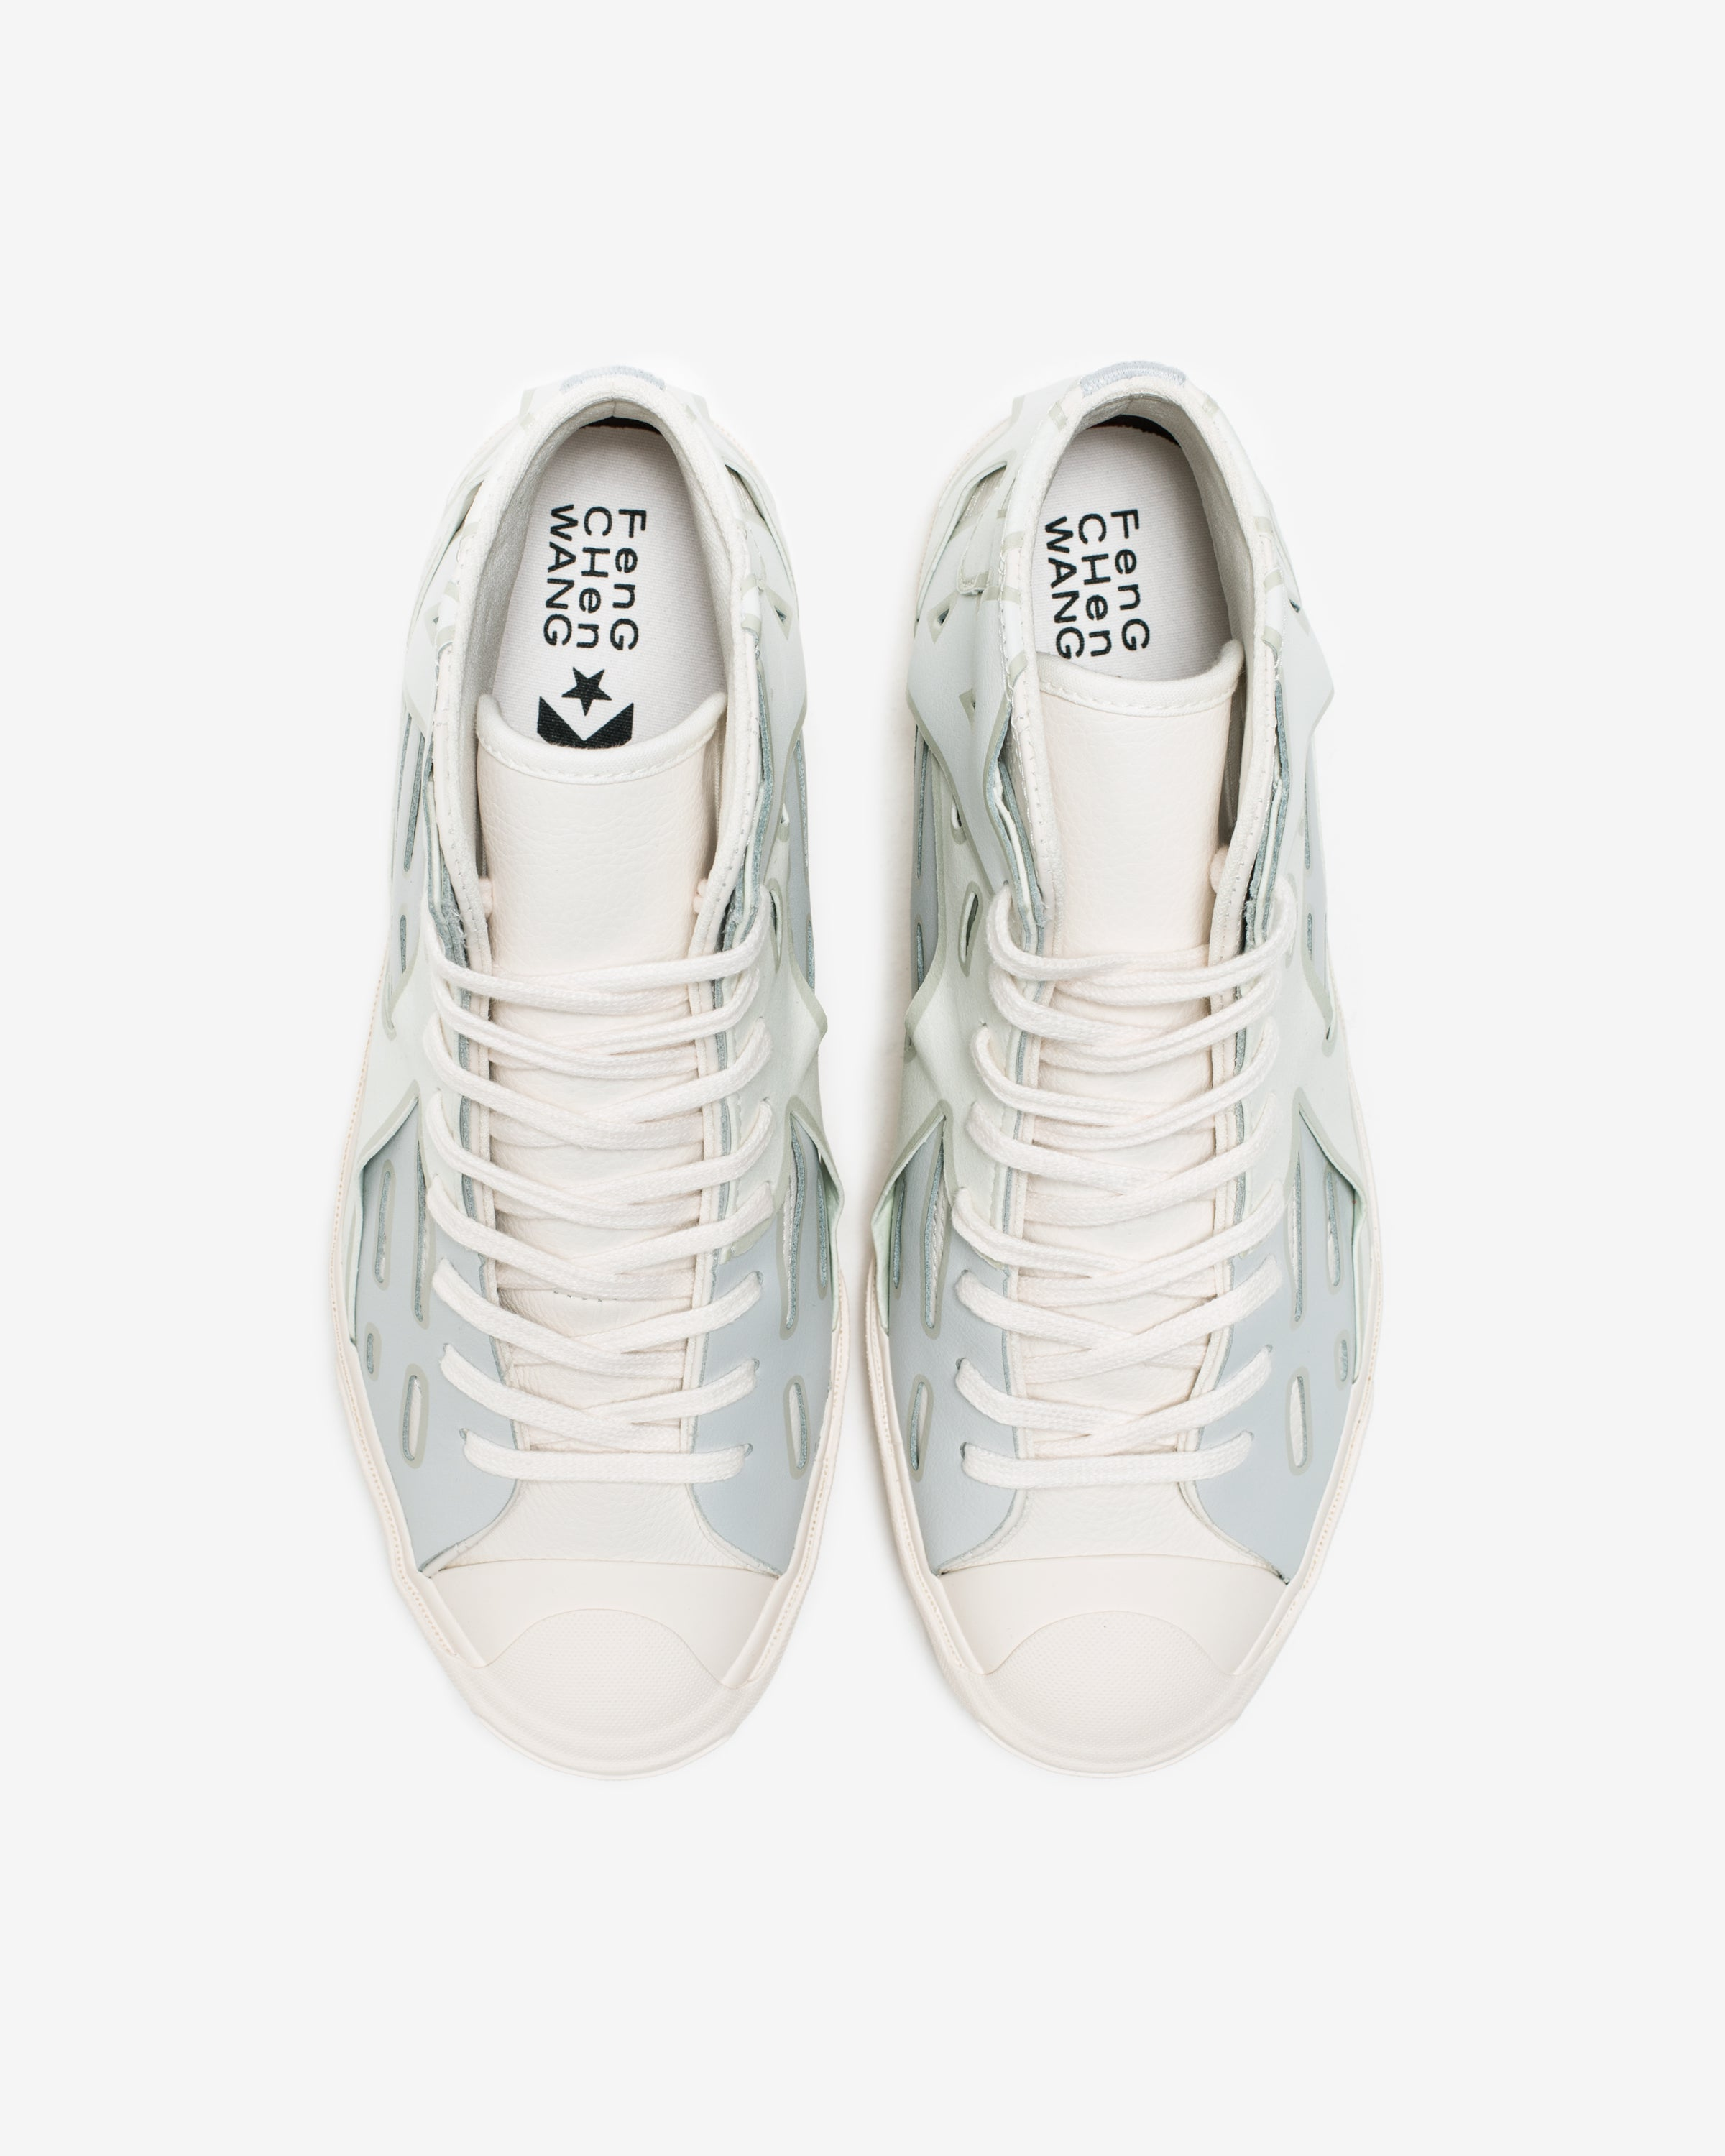 JACK PURCELL MID FENG CHEN WANG -  SEASALT/ BARELYBLUE